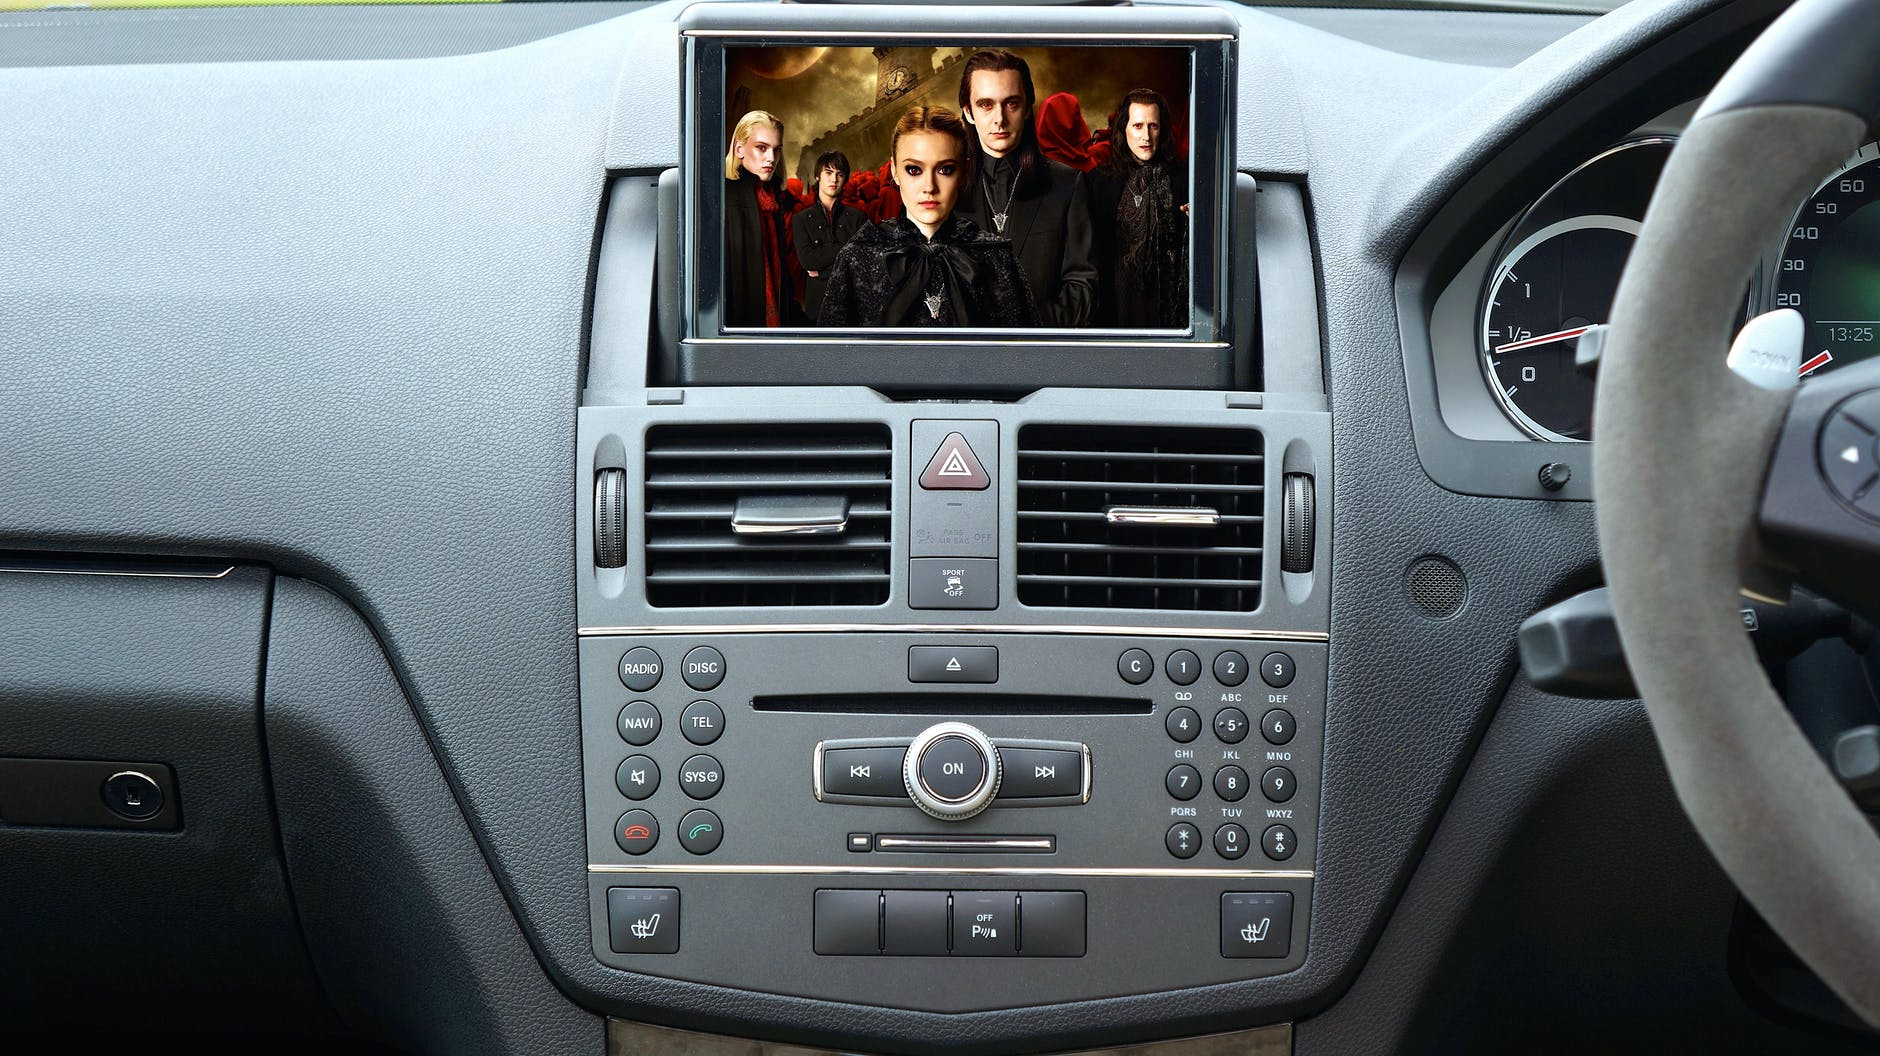 Photo of a dashboard of a car